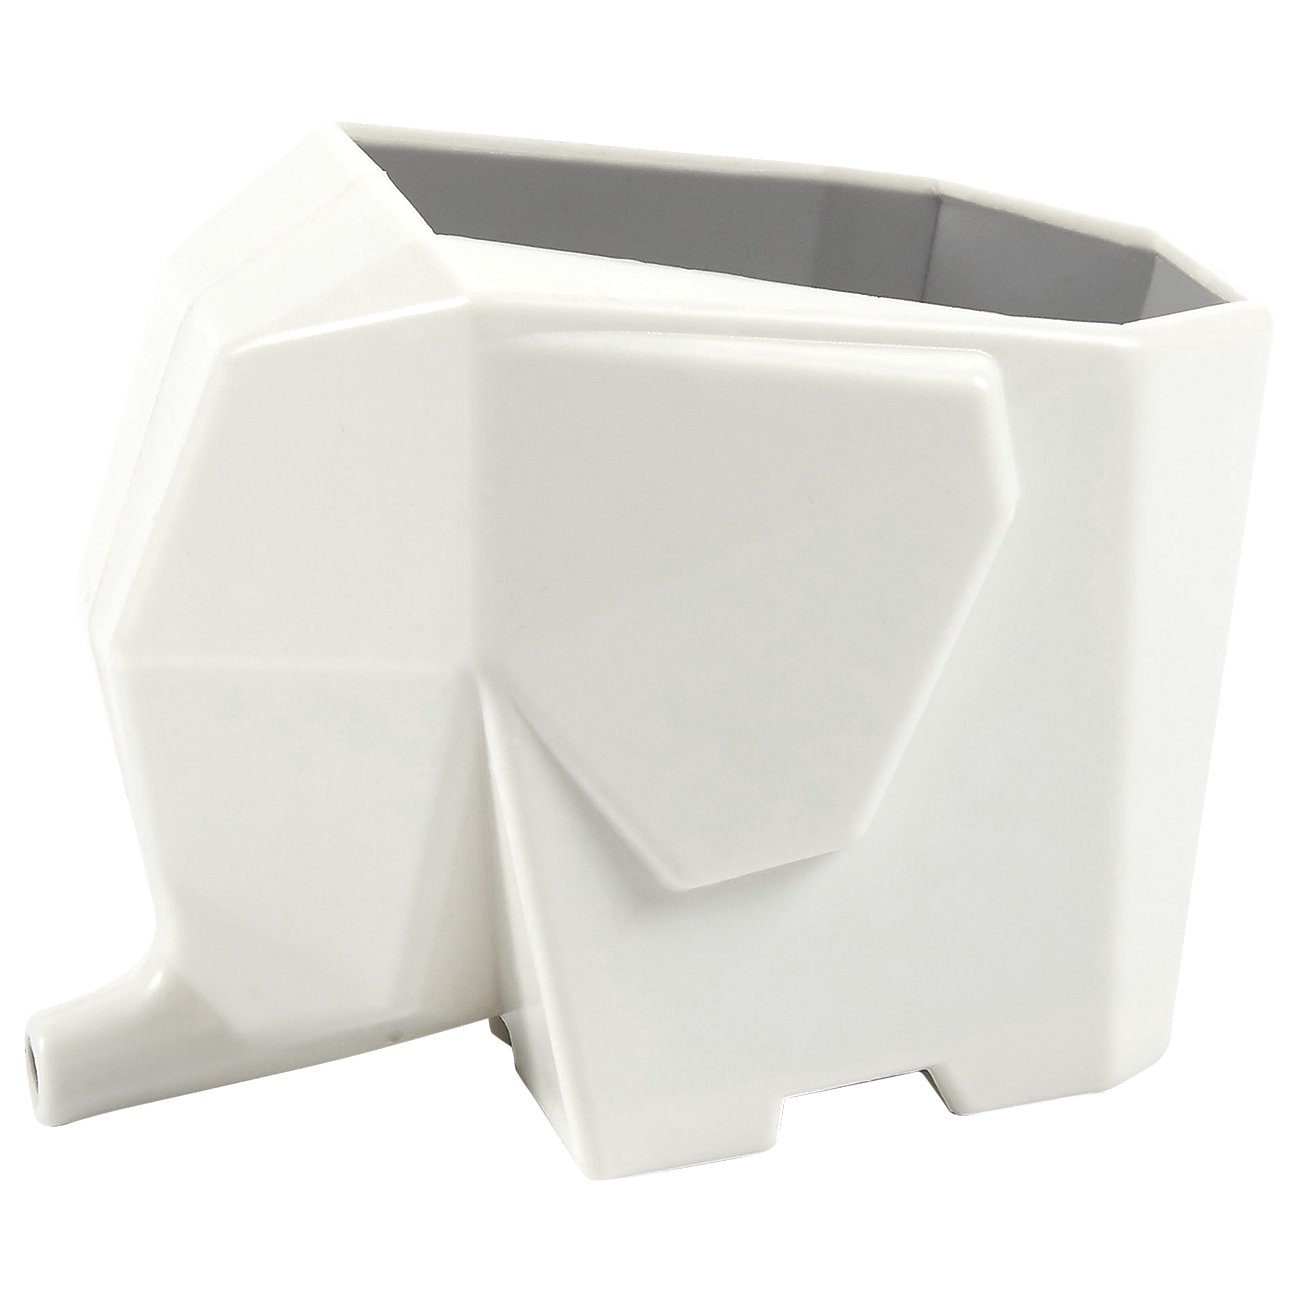 Elephant Plastic Kitchen Cutlery Drainer - Dinnerware Utensils Storage, Tooth Brushes Organizer for Bathroom, Sink, Bedroom Cosmetic Organized Holder, Storage Box - White, 6 x 4.75 x 3.75 Inches Juvale